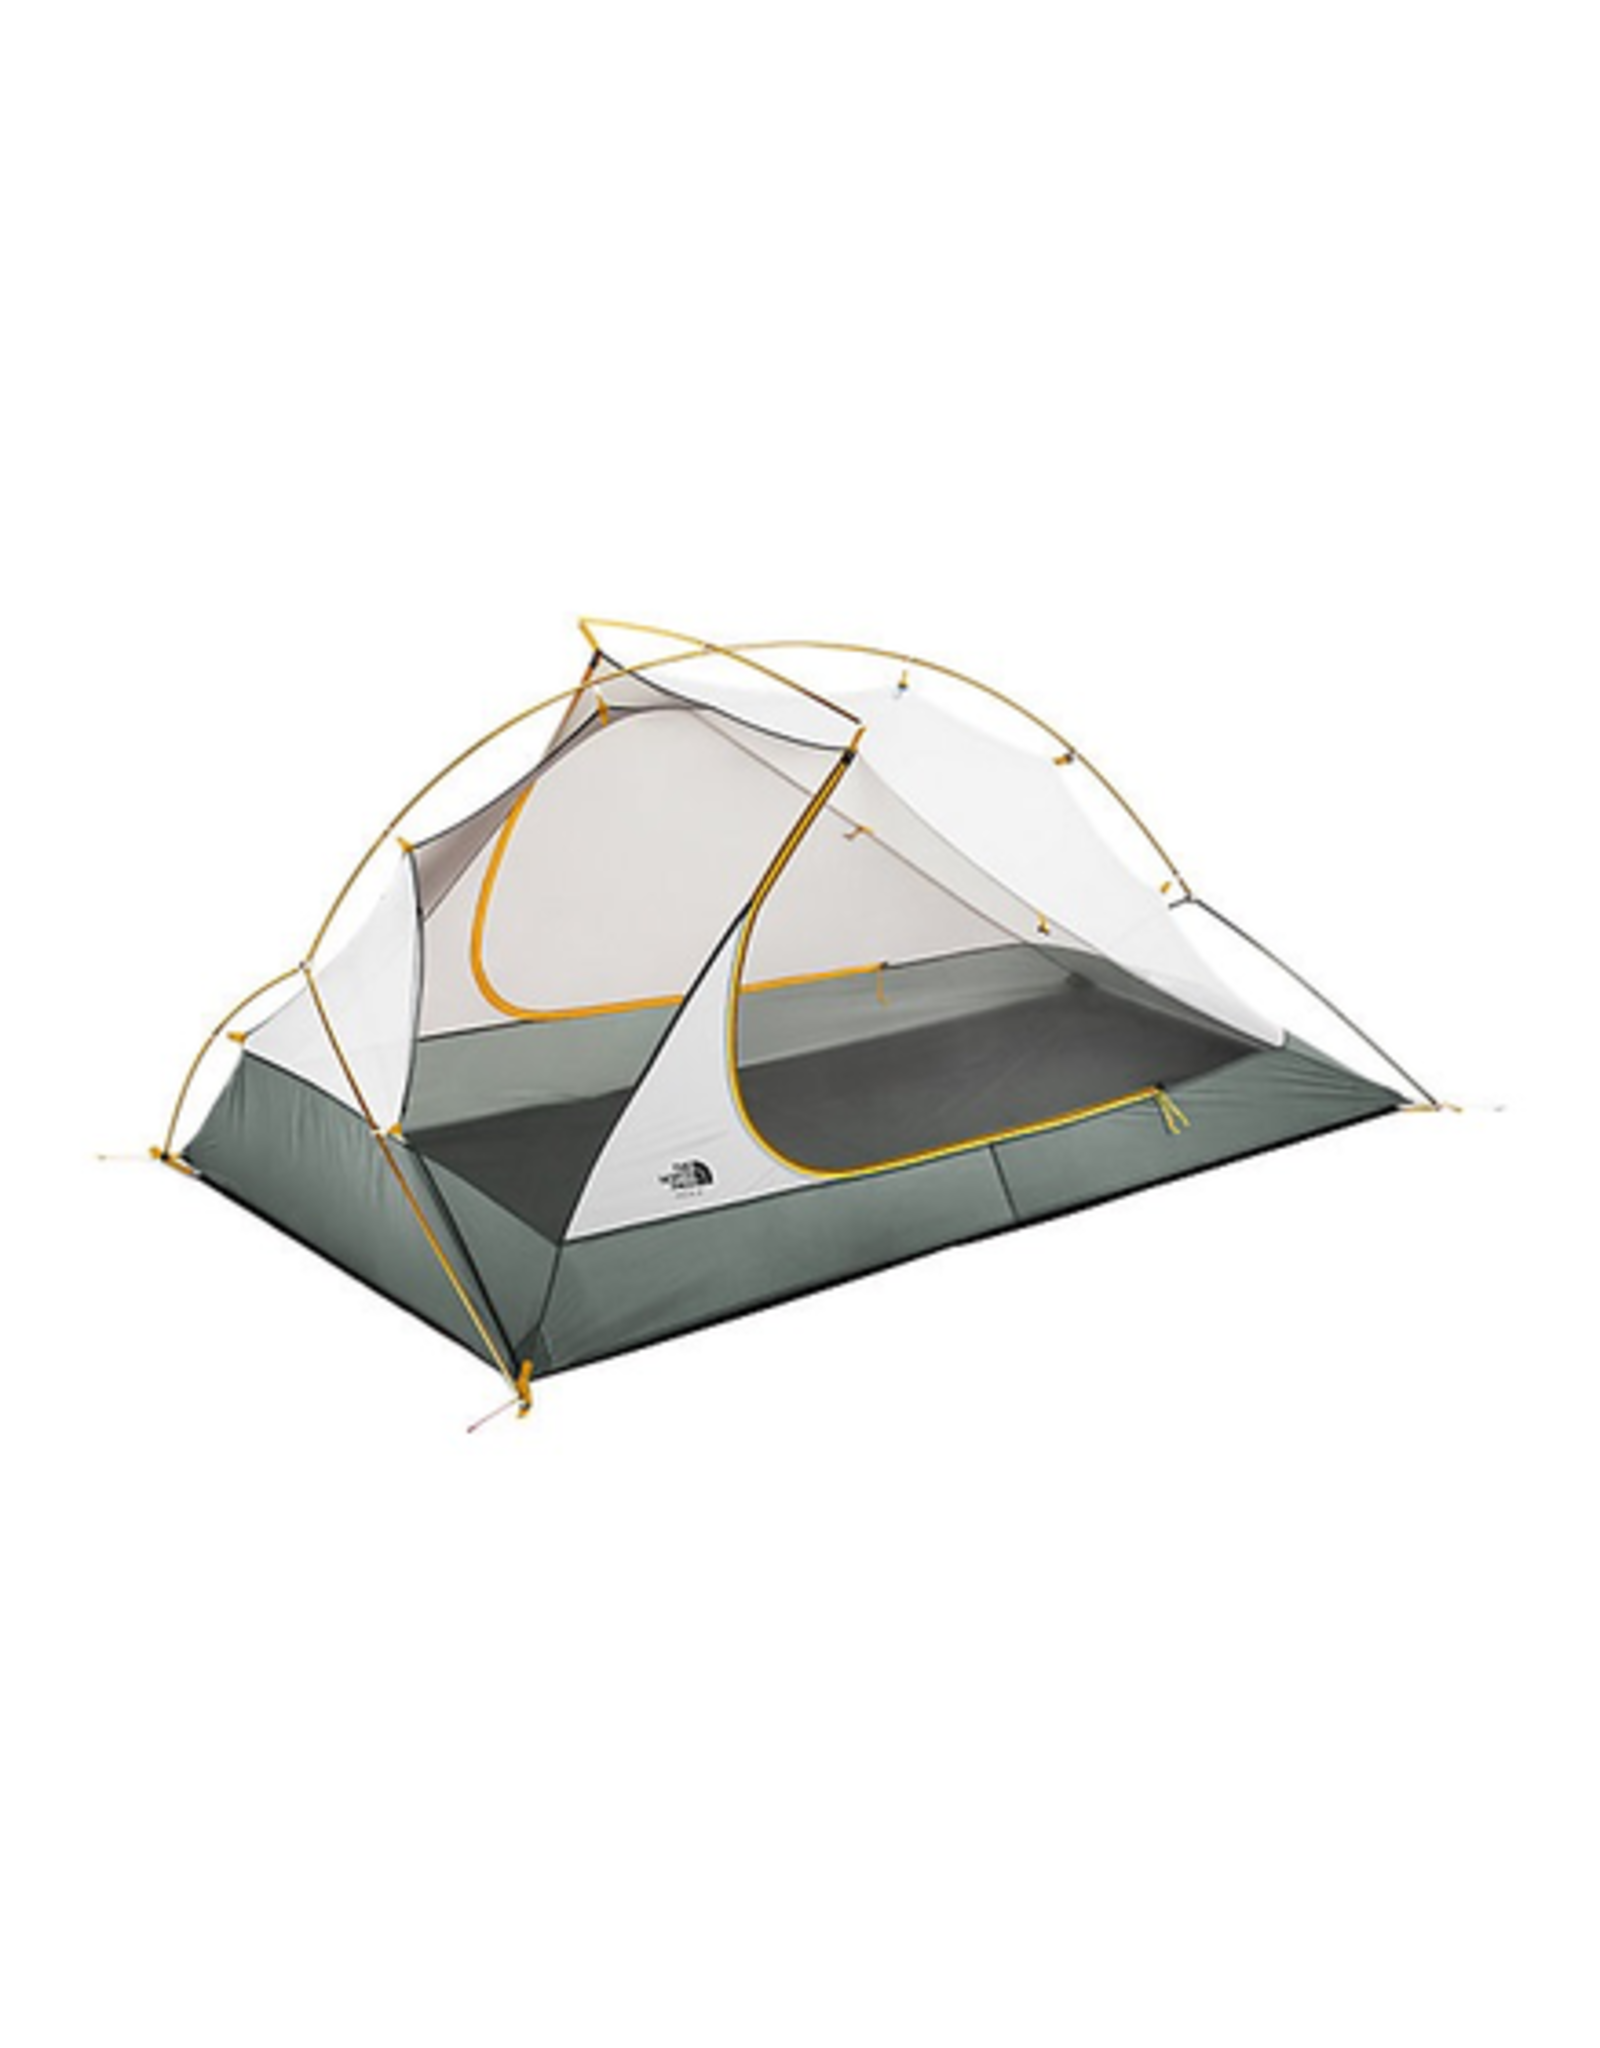 North Face North Face Mica FL 2 Tent